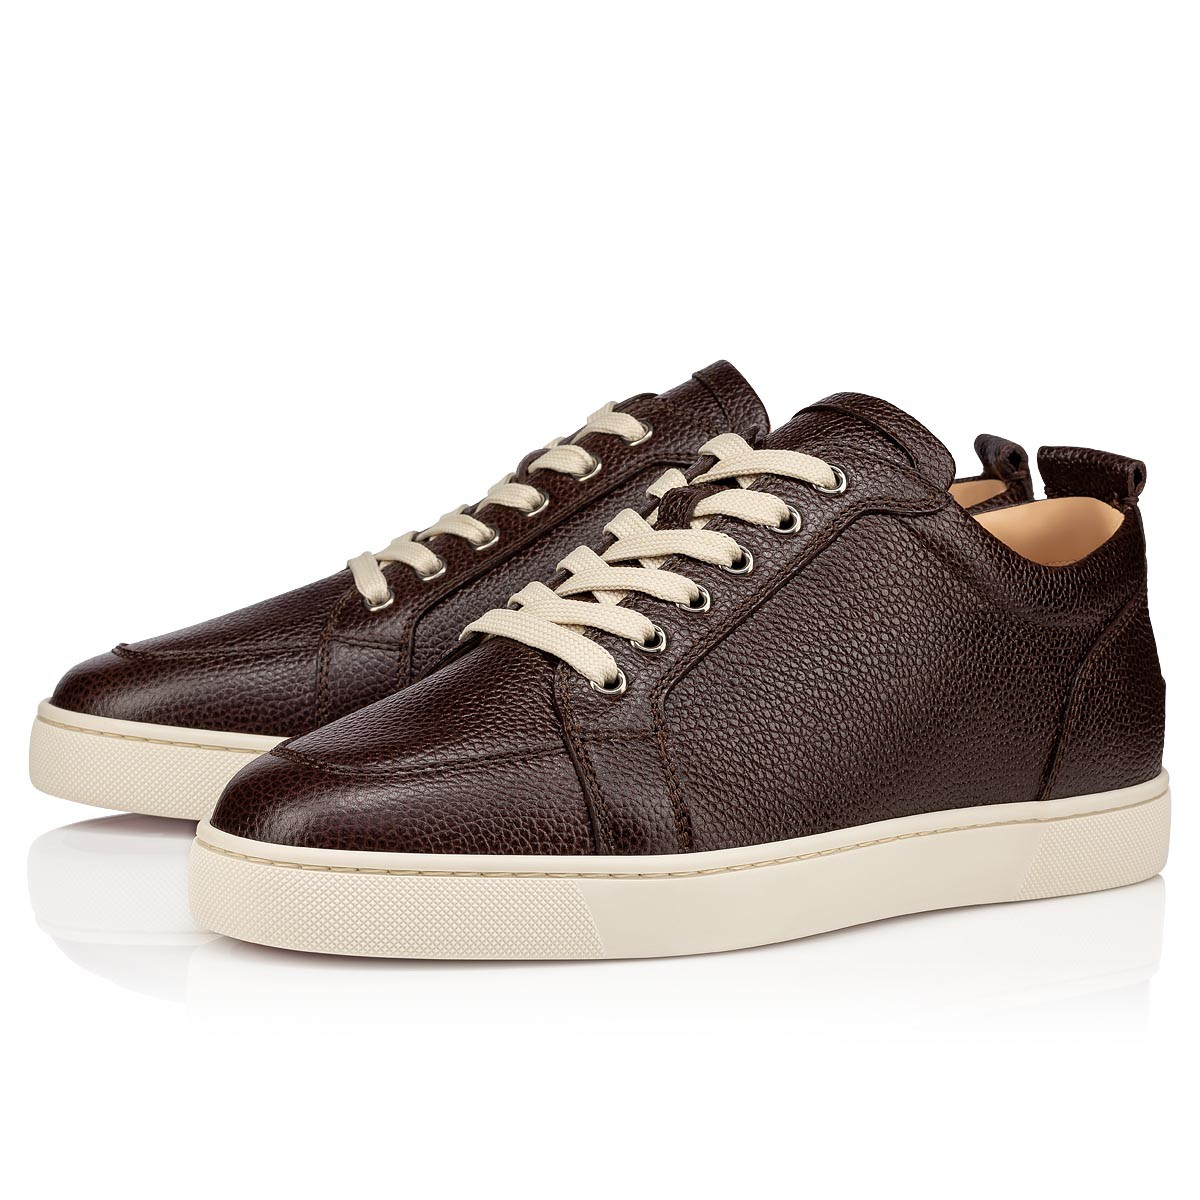 rantulow flat leather sneakers